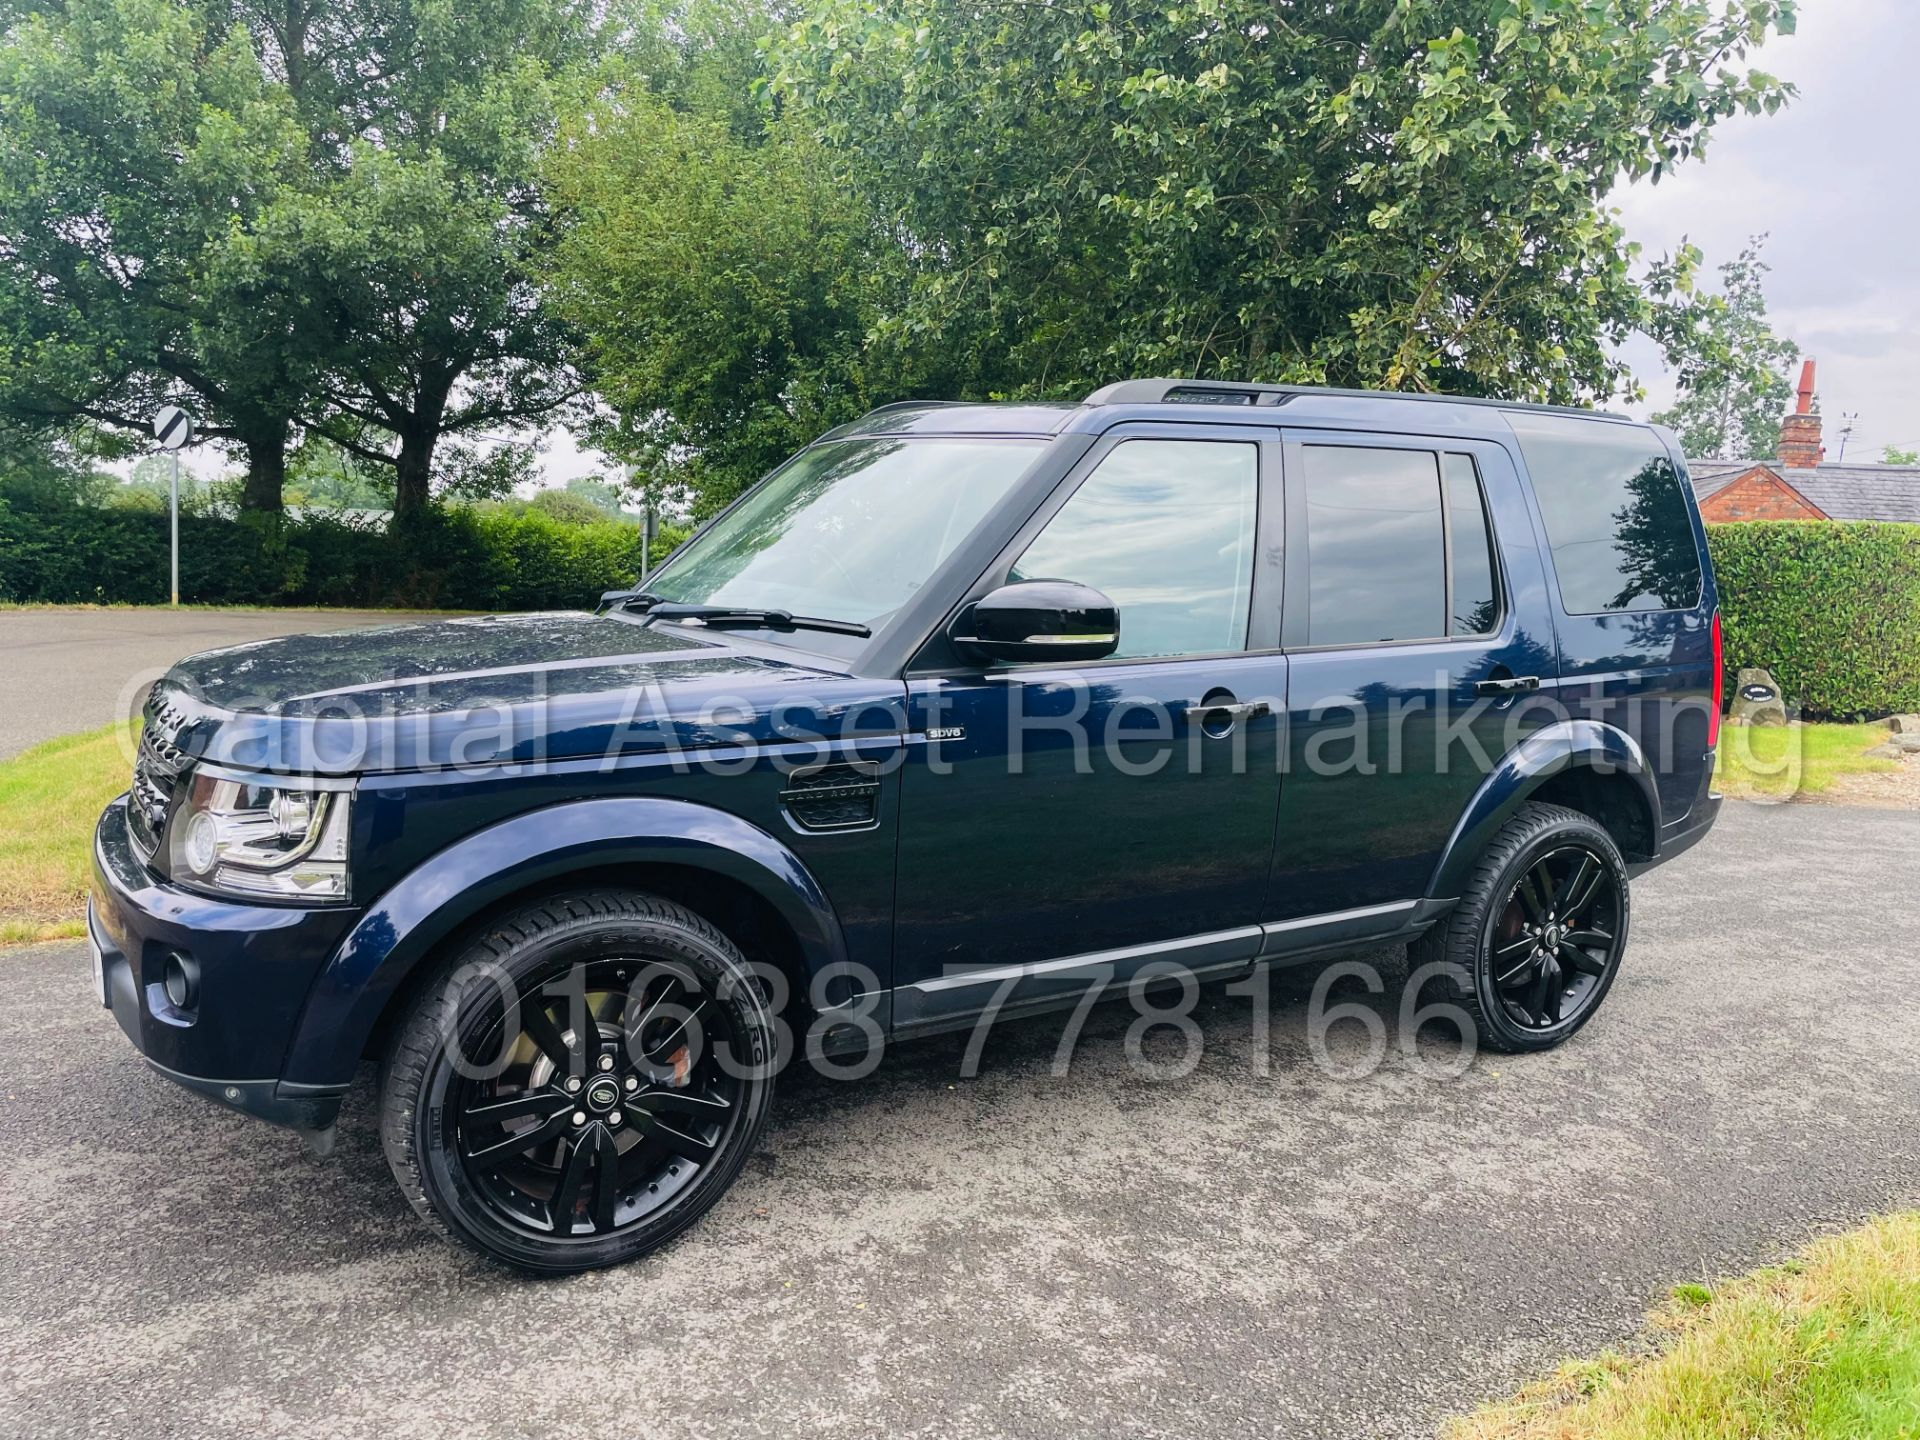 LAND ROVER DISCOVERY 4 *HSE* 7 SEATER SUV (2014 - NEW MODEL) '3.0 SDV6 - 255 BHP - 8 SPEED AUTO' - Image 7 of 61